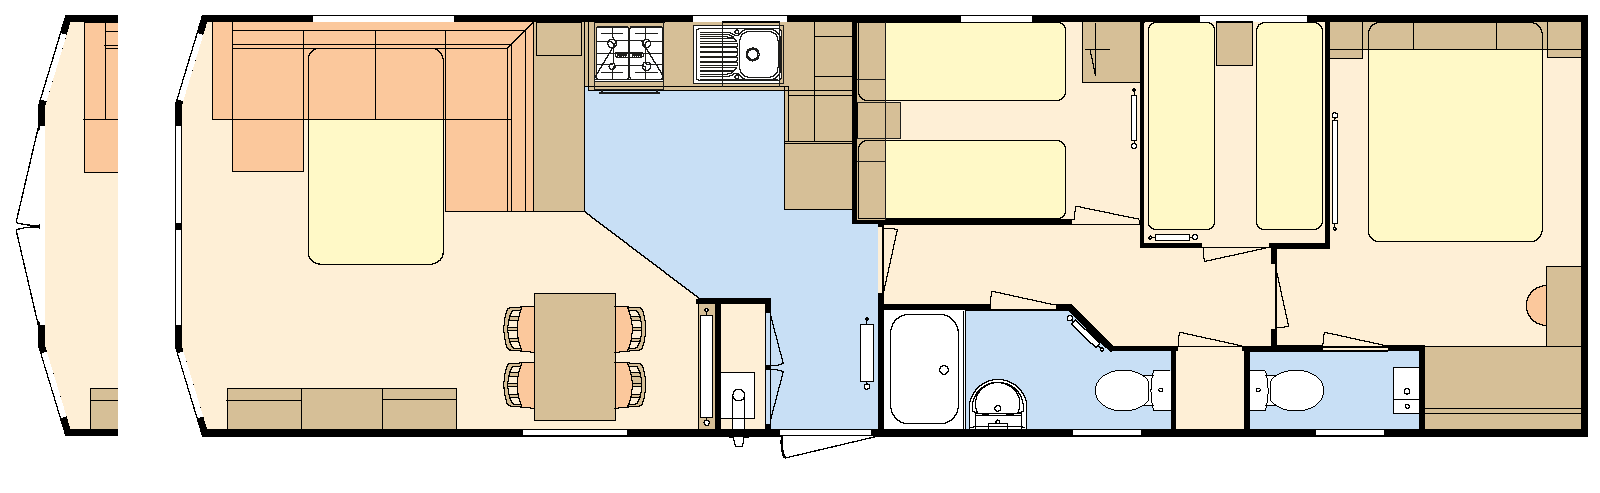 Chorus Atlas Leisure Homes Bed Sizes Diagram 40 12 3 Bedroom 8 Berth